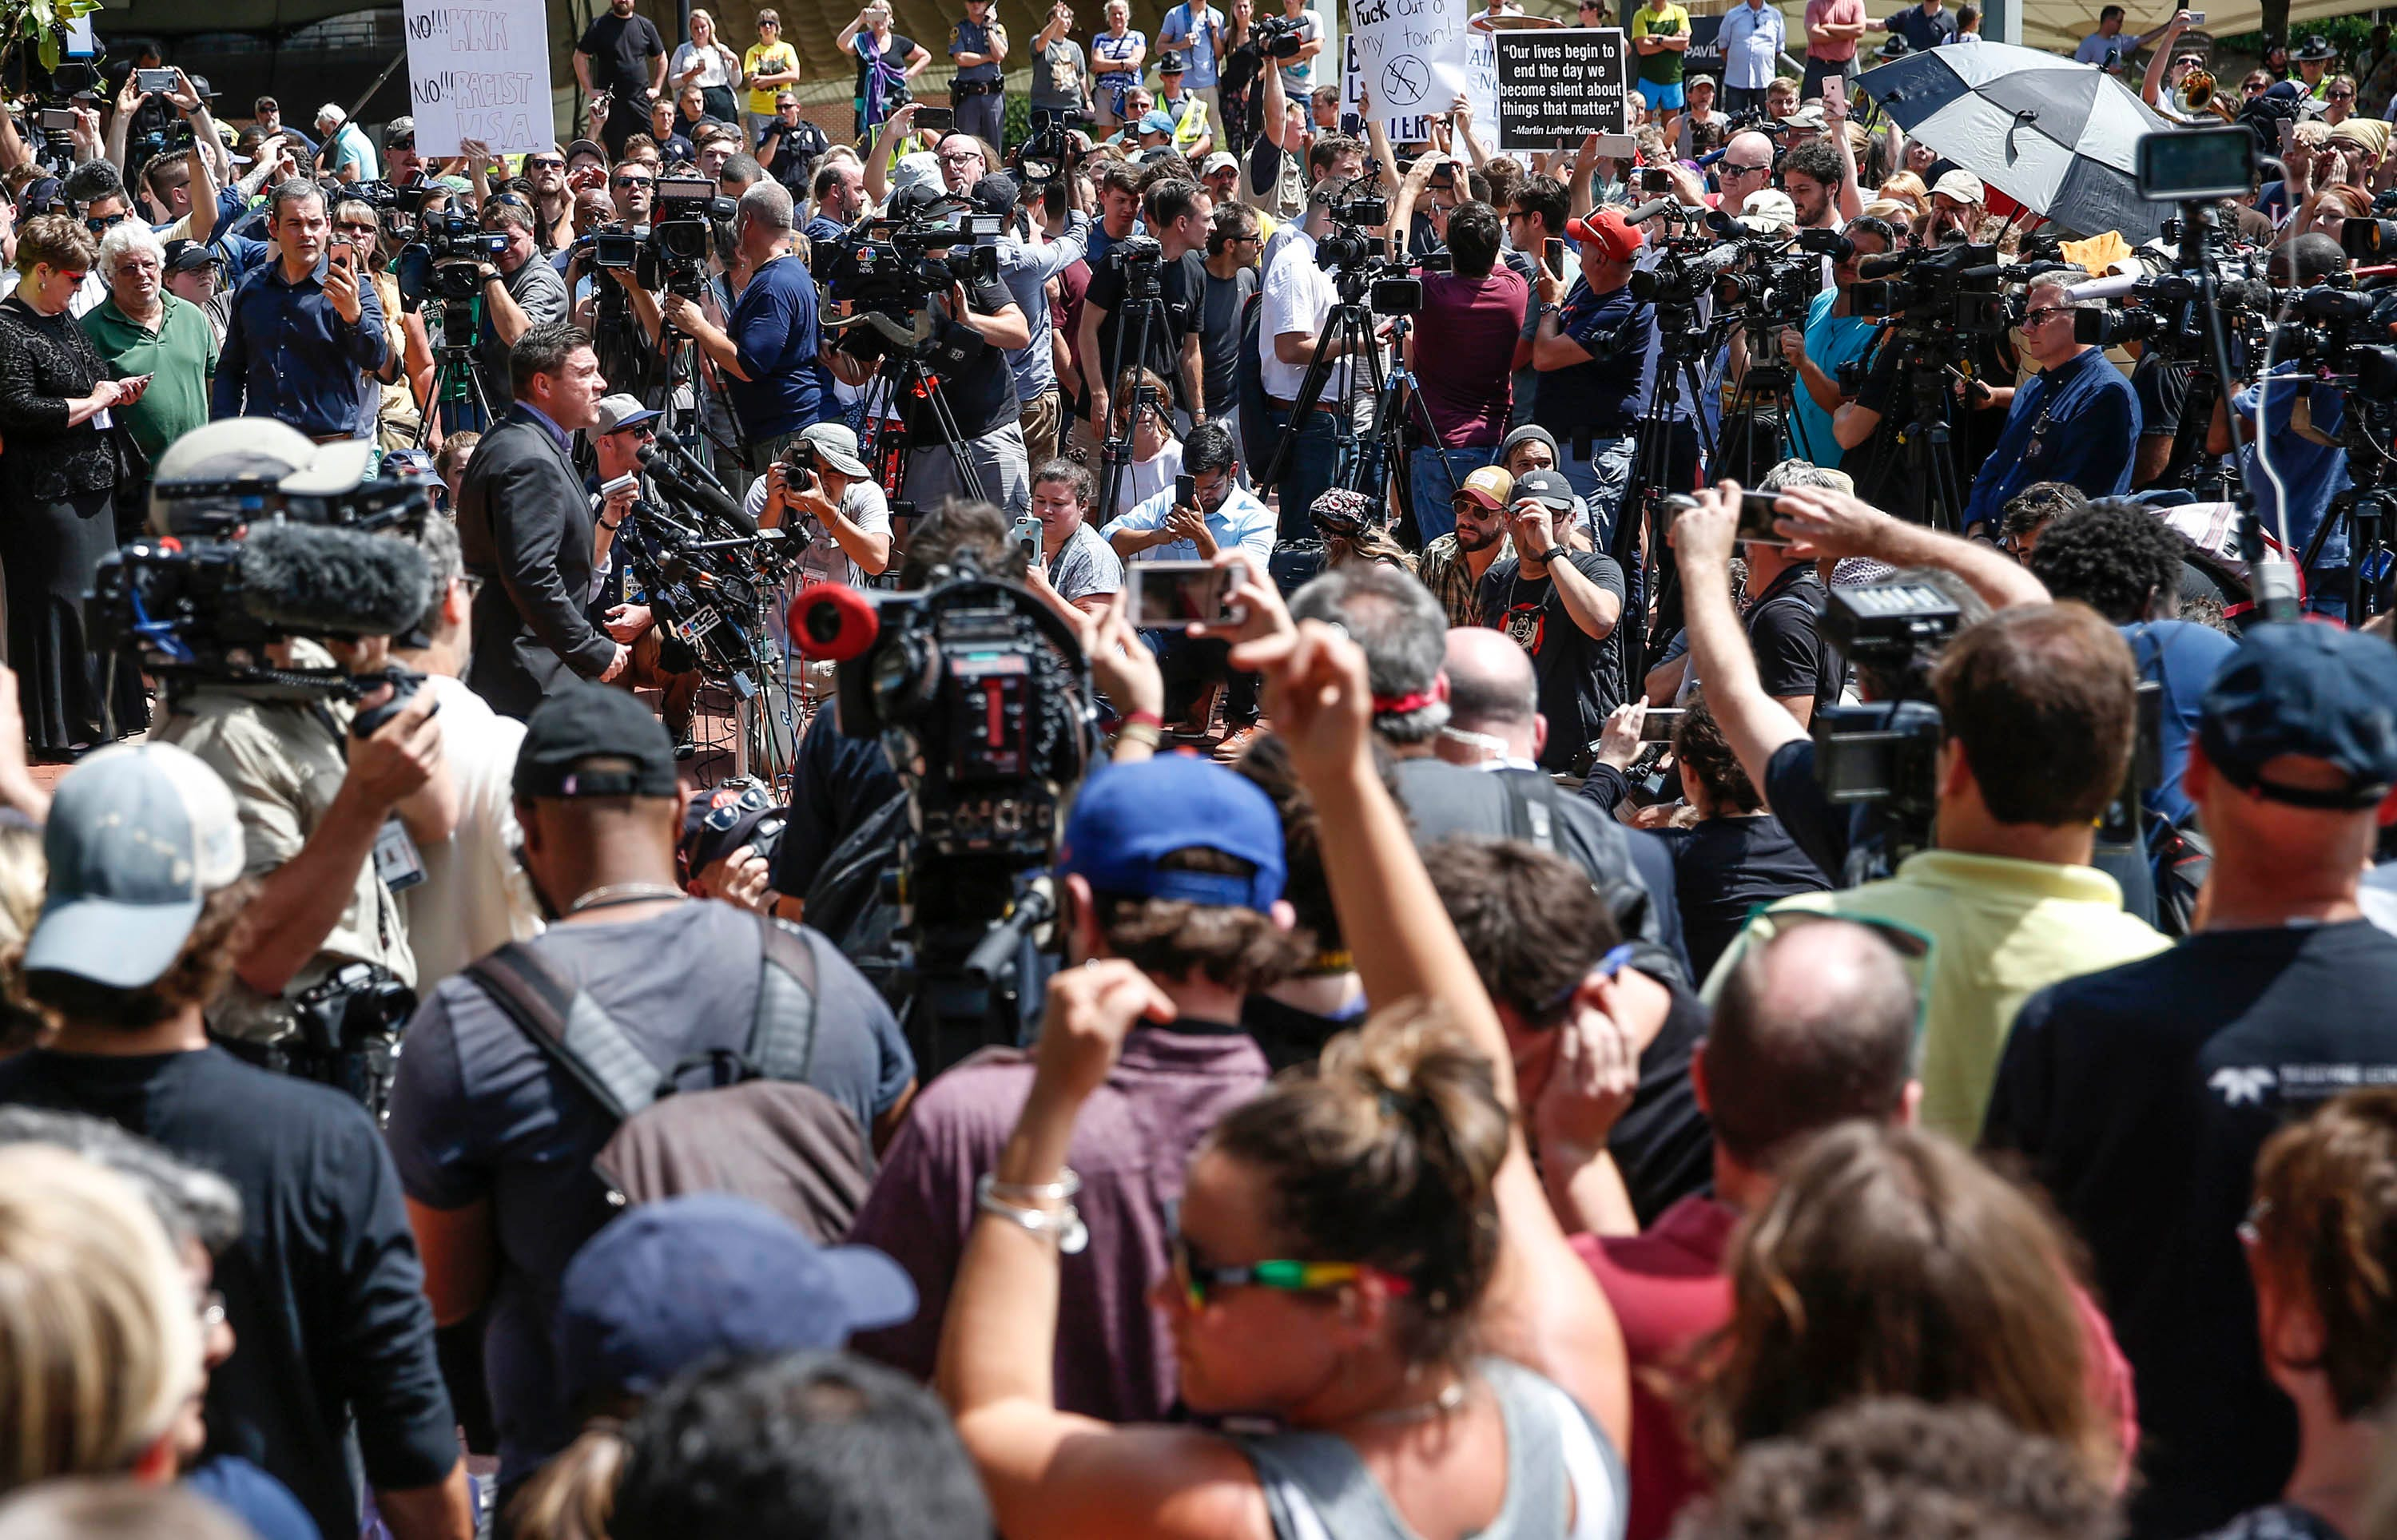 Aug 13, 2017; Charlottesville, VA, USA;  'Unite the Right' rally organizer and white nationalist Jason Kessler speaks to a large crowd gathered at Charlottesville City Hall. Crowd members played loud instruments and yelled as to drown out his voice. Mandatory Credit: Mykal McEldowney/IndyStar via USA TODAY NETWORK ORIG FILE ID:  20170813_lbm_usa_075.JPG